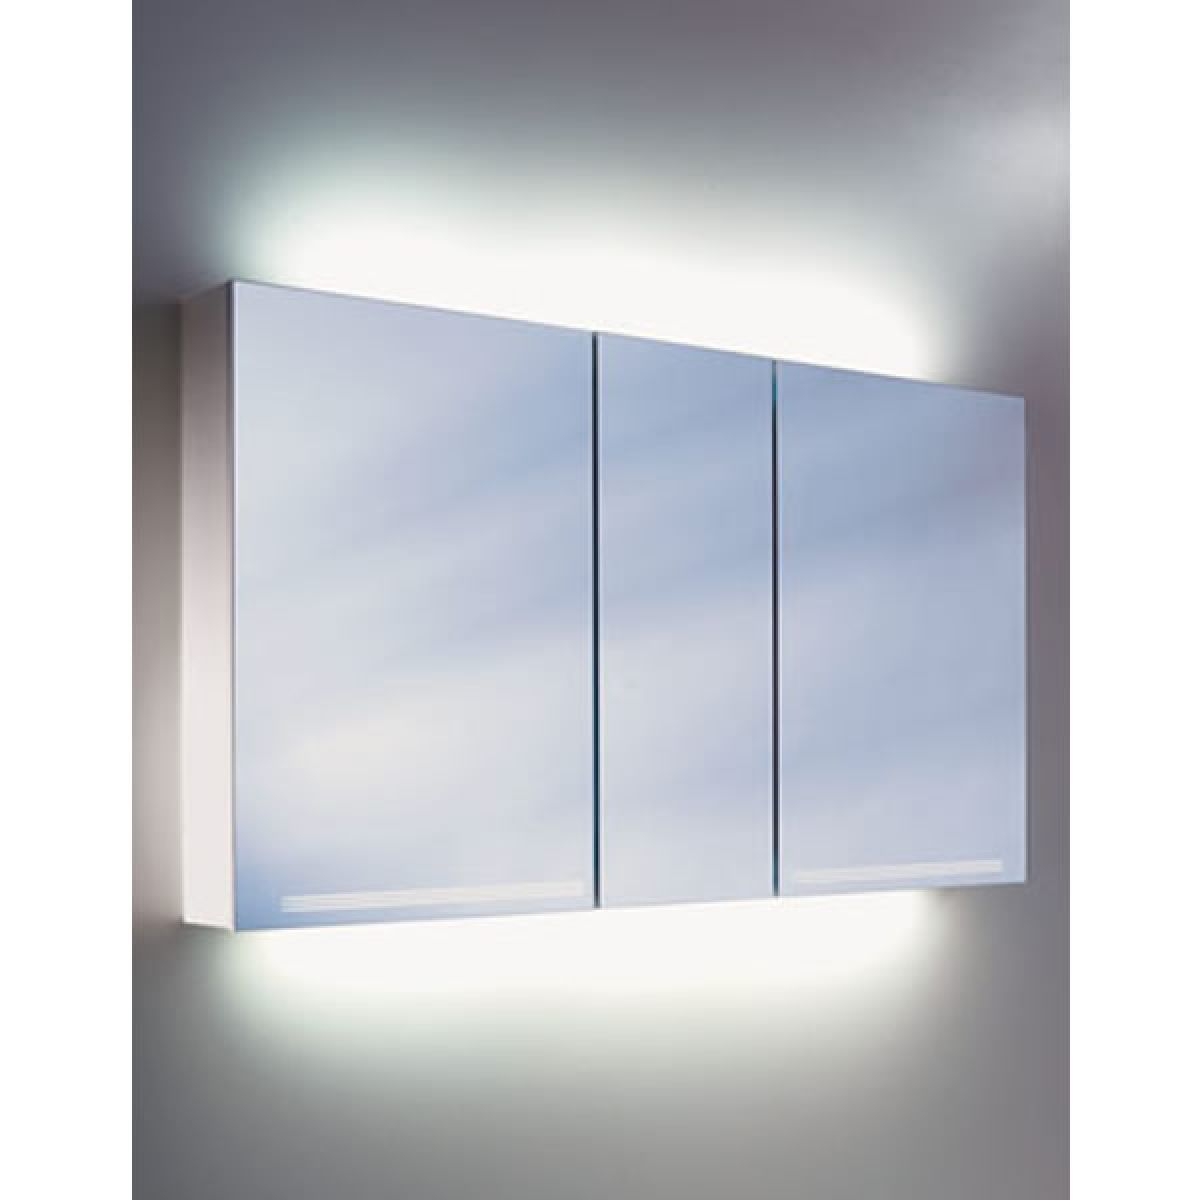 Mirrored Bathroom Cabinets Uk Bathroom Mirror Cabinets Uk Schneider Graceline 3 Door Mirror